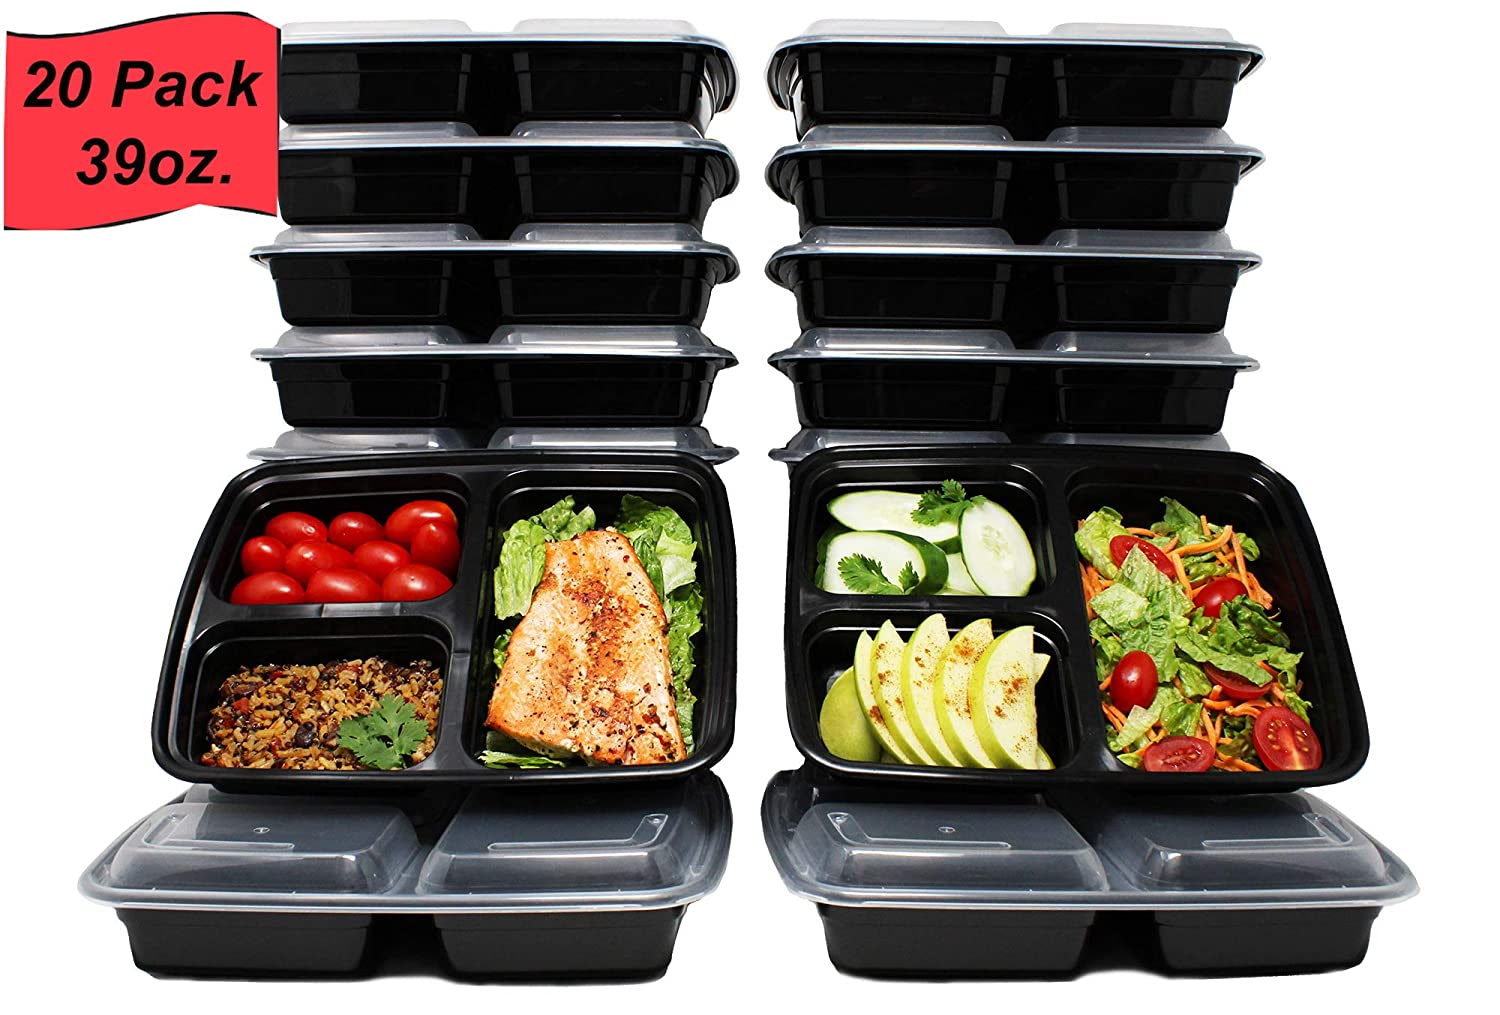 Prep Pro Meal Prep Containers [20 Pack] 39oz 3 Compartment with Lids, Microwave/Freezer/Dishwasher Safe, Reusable/Stackable, BPA Free, Meal Planning, Food Storage, Lunch Bento Box, Portion Control